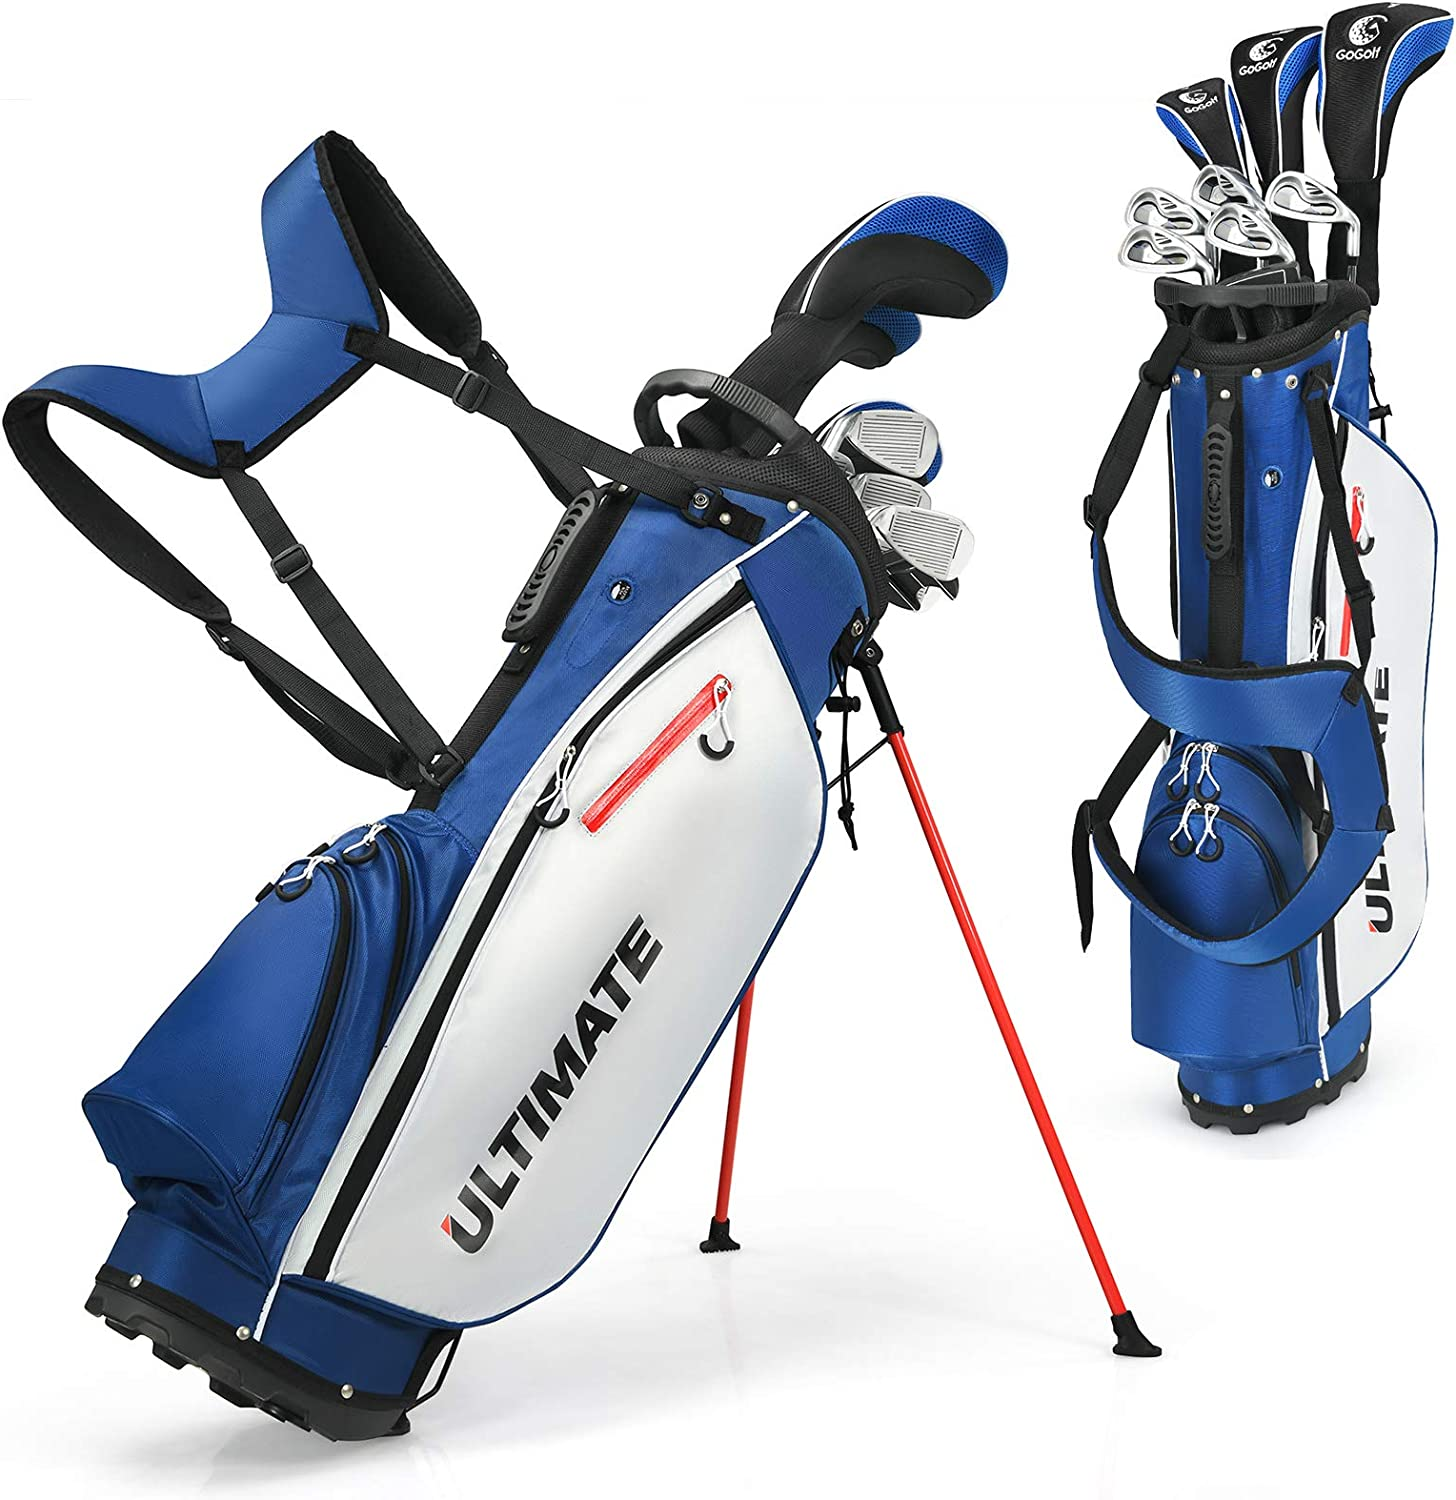 Tangkula 10 Pieces Complete Golf Clubs Set